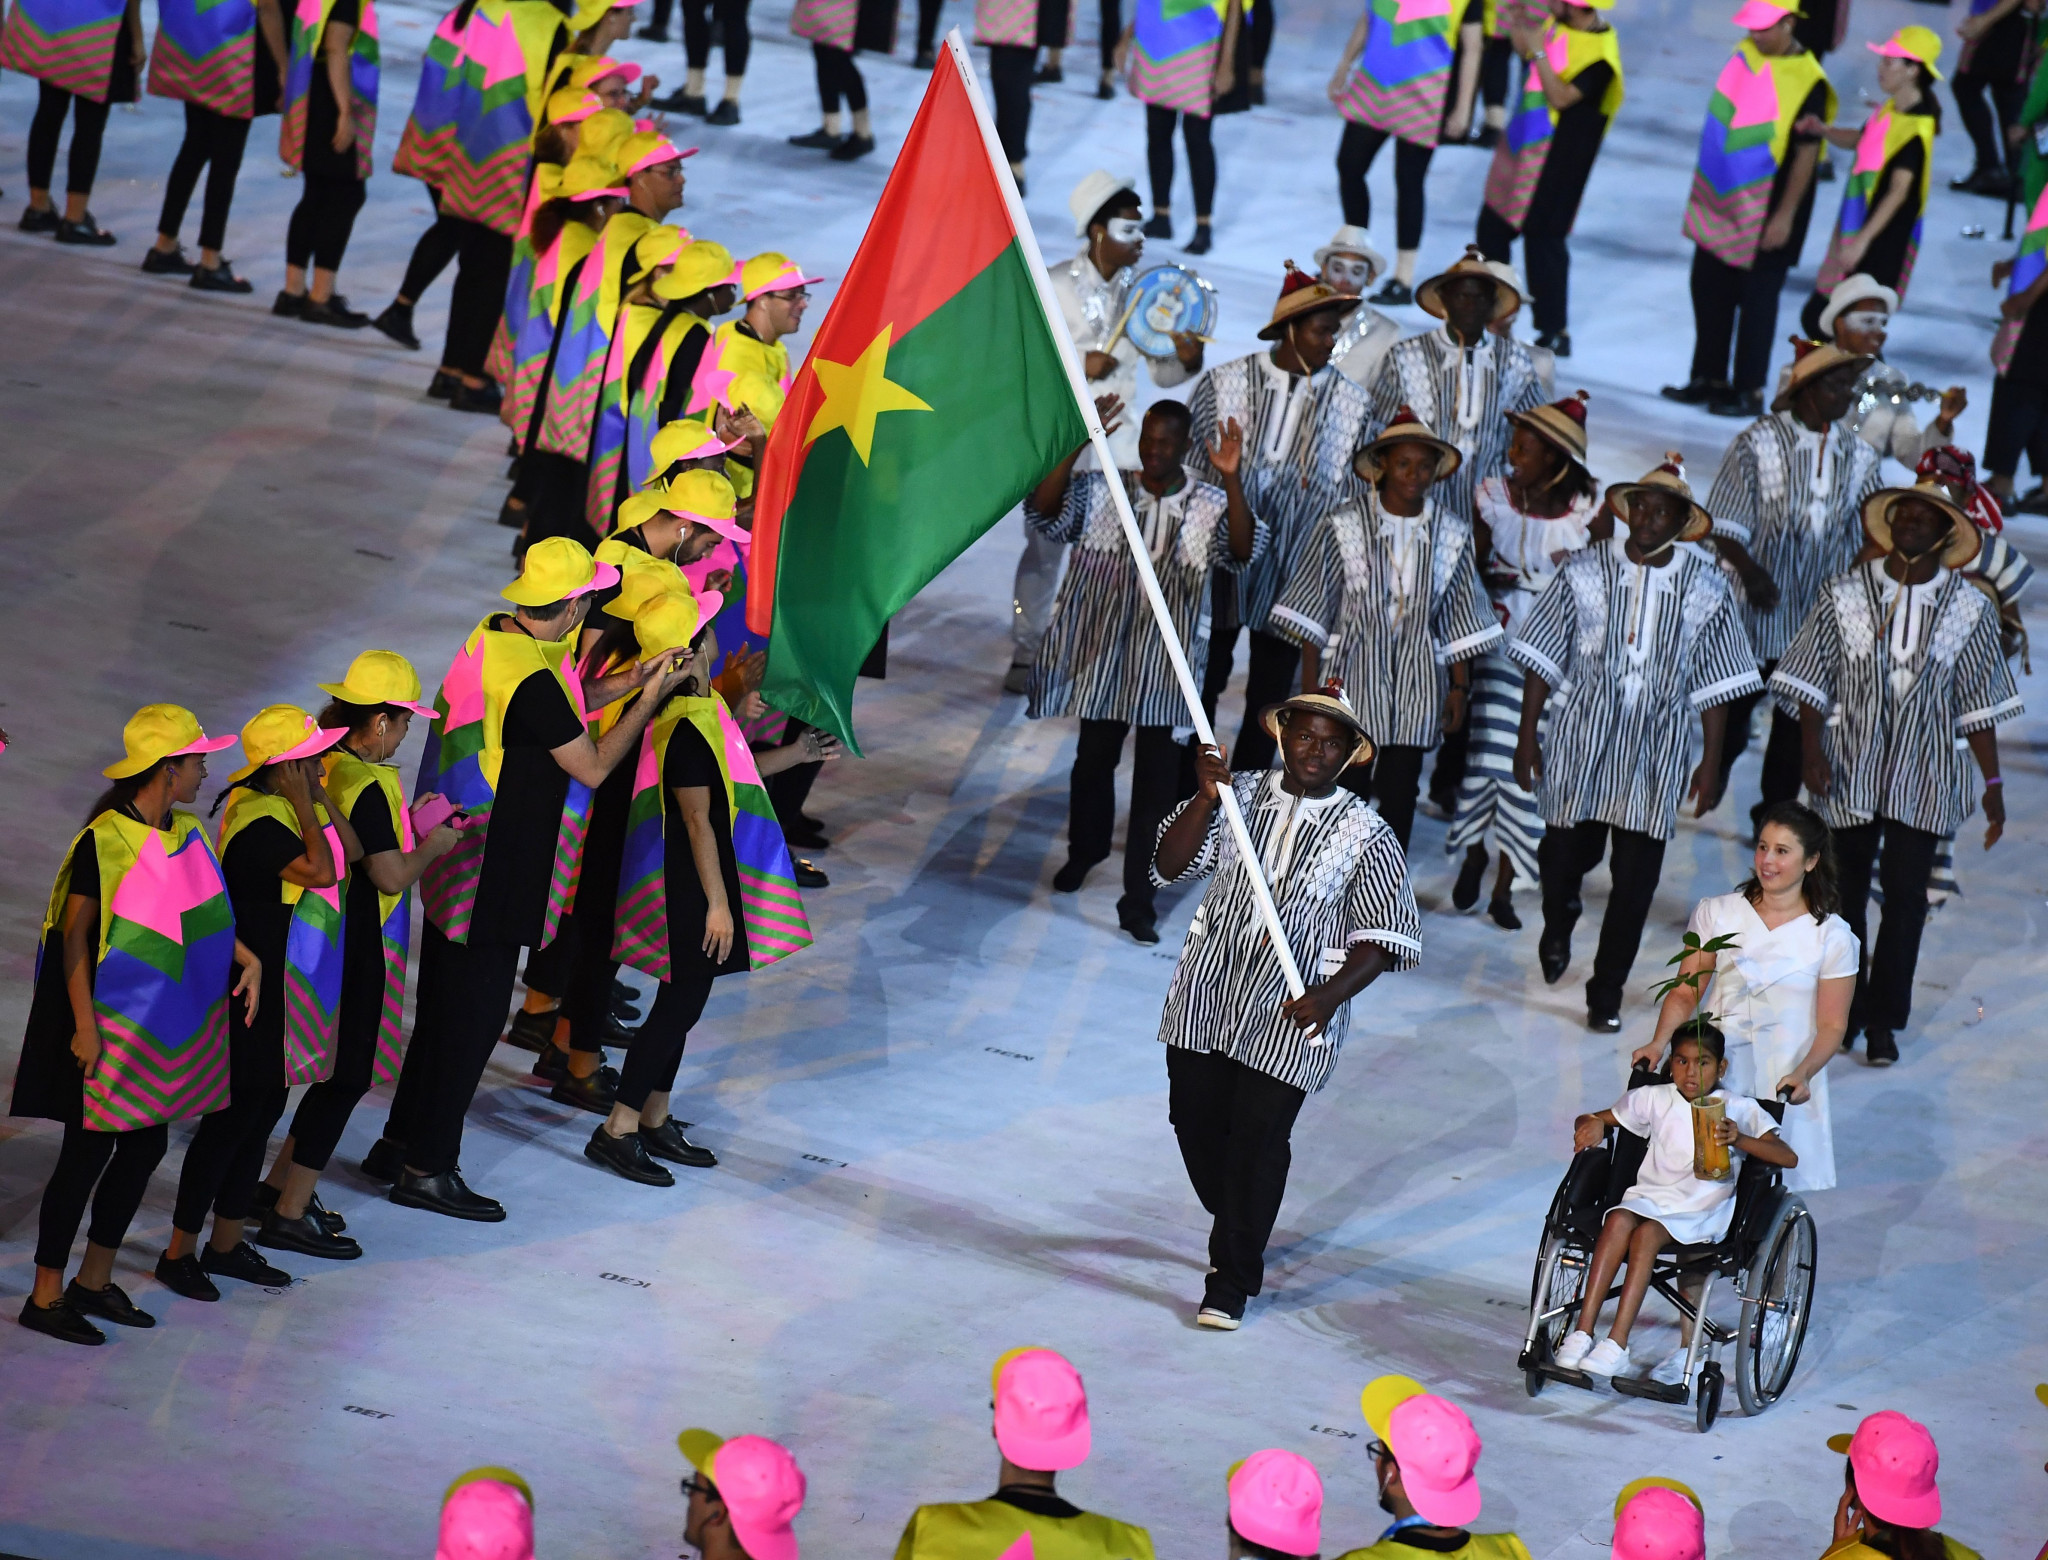 Burkina Faso has never hosted the African Games  ©Getty Images